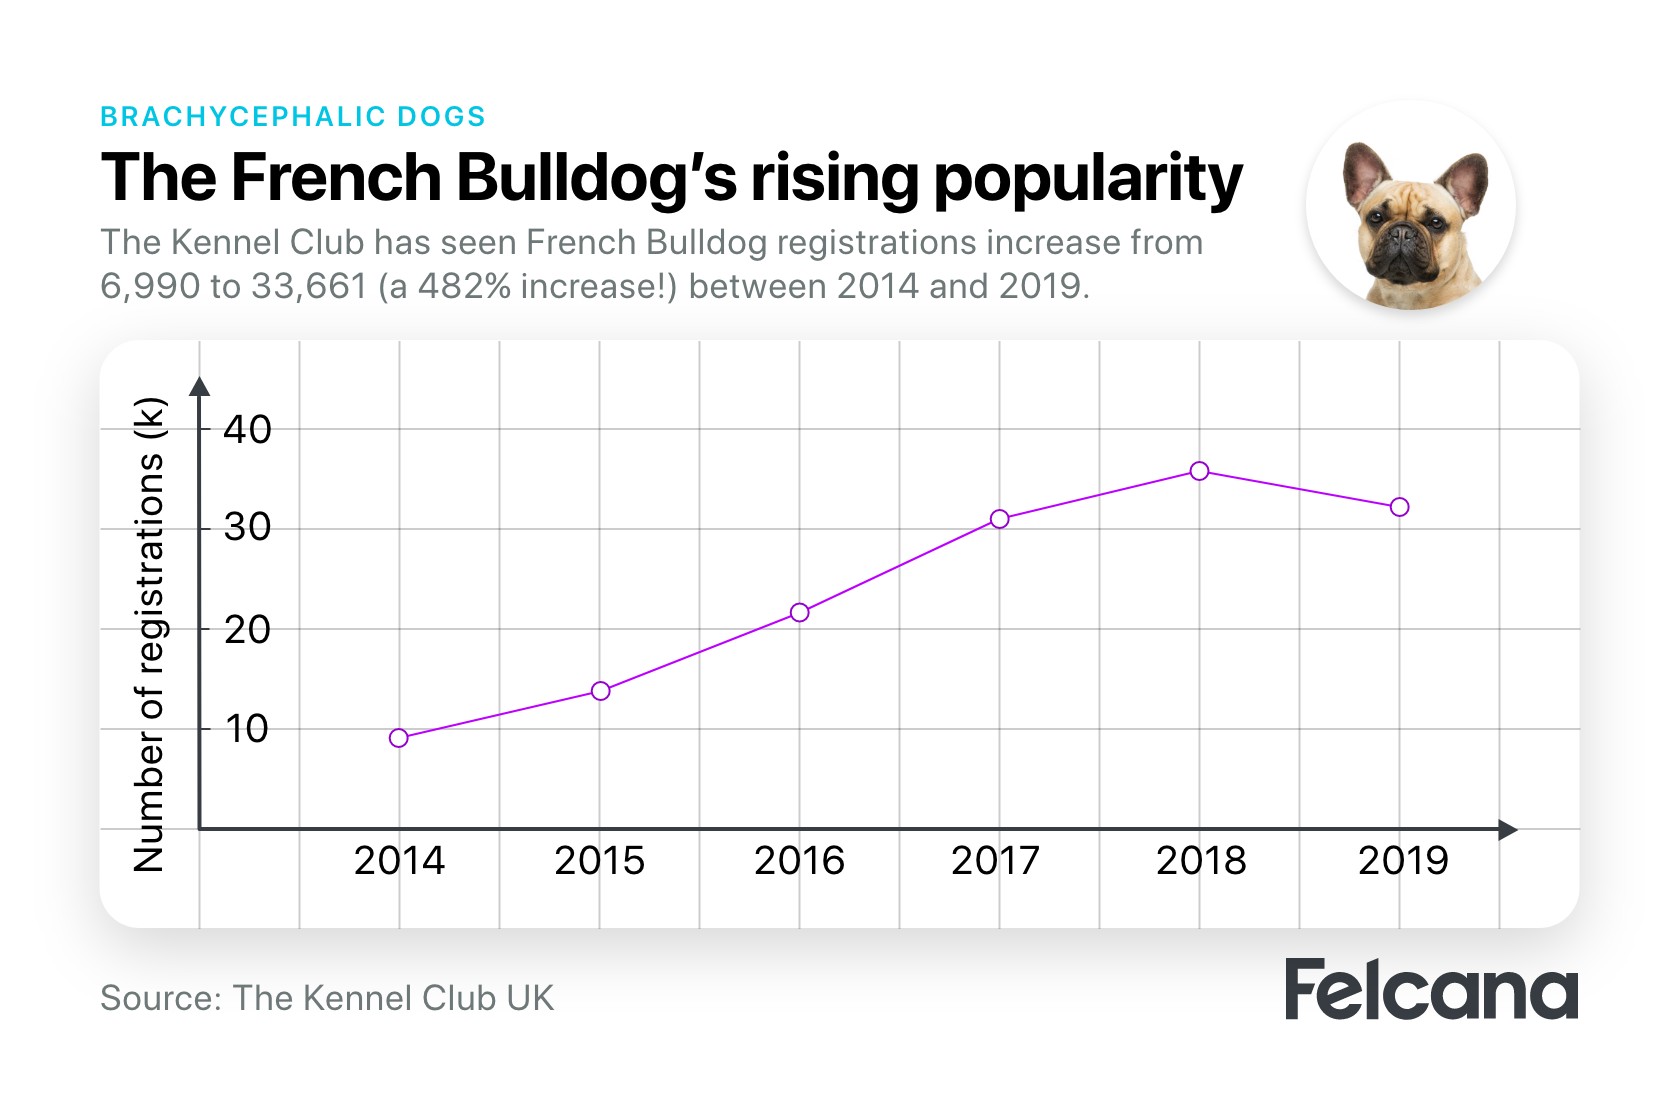 Frenchie's rising popularity from 2014-2019, based on kennel club UK registrations